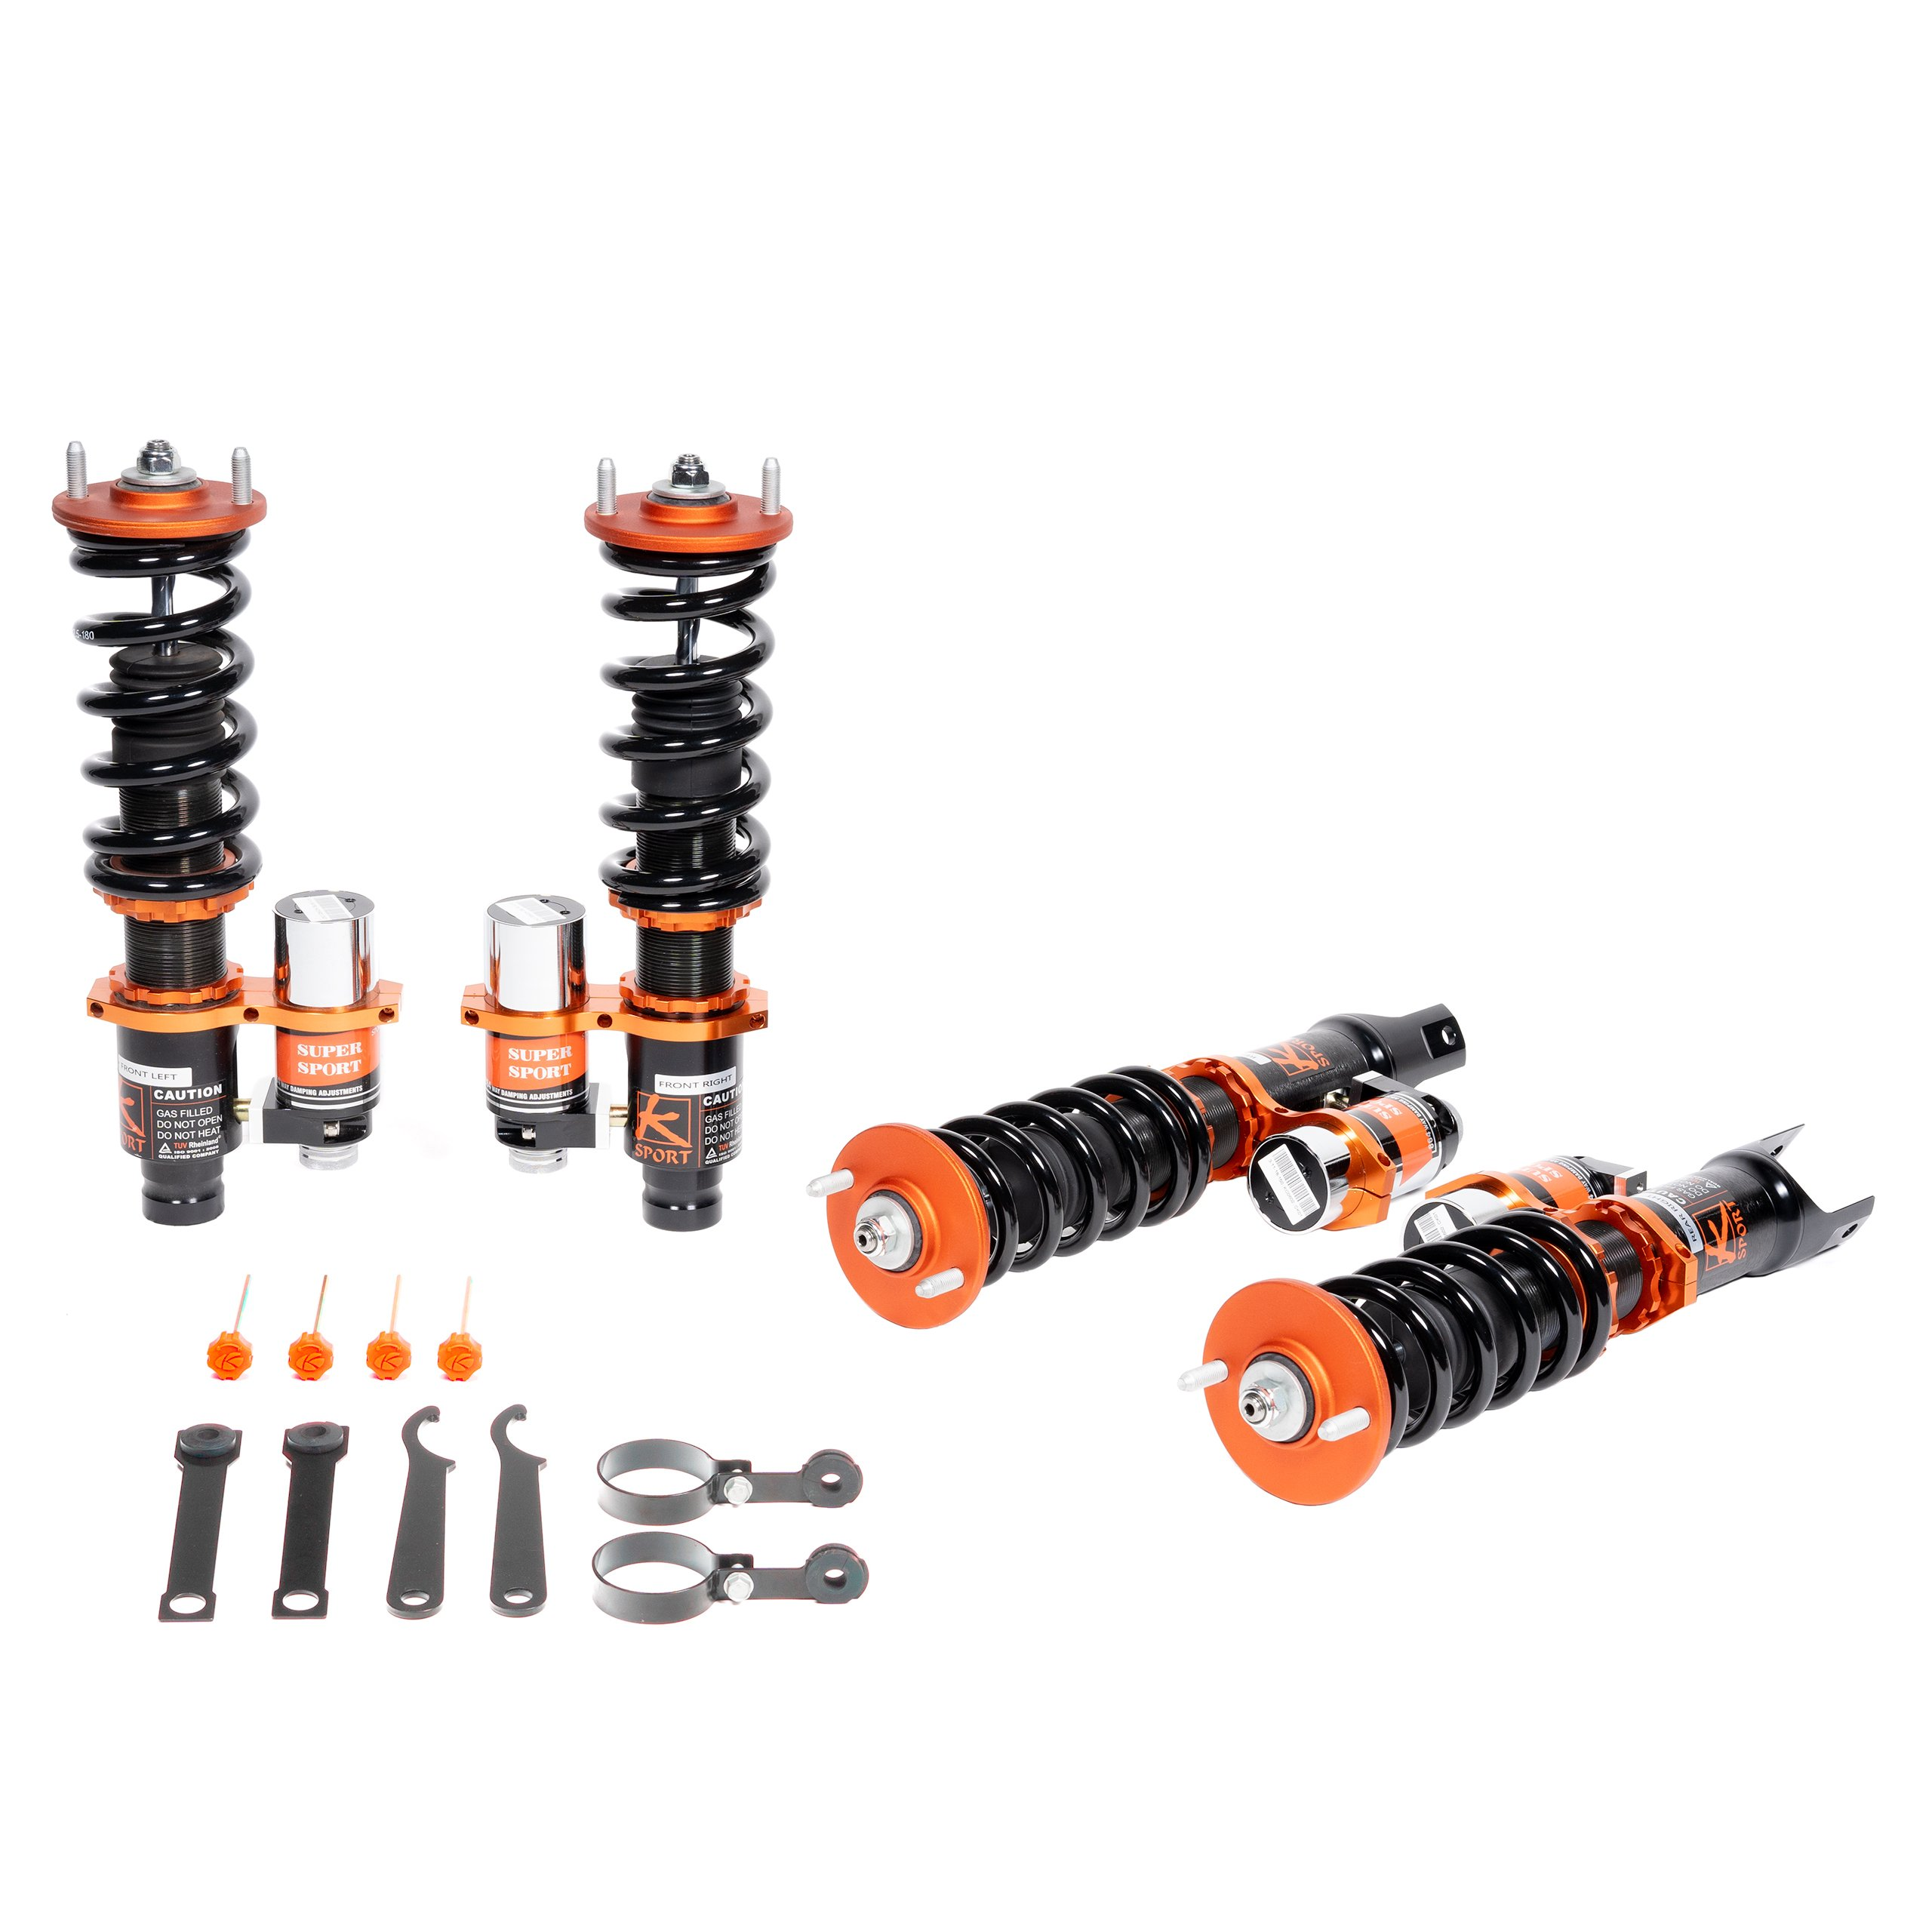 Acura Rsx Adjustable Coilovers For 02 06 Cac030 P2